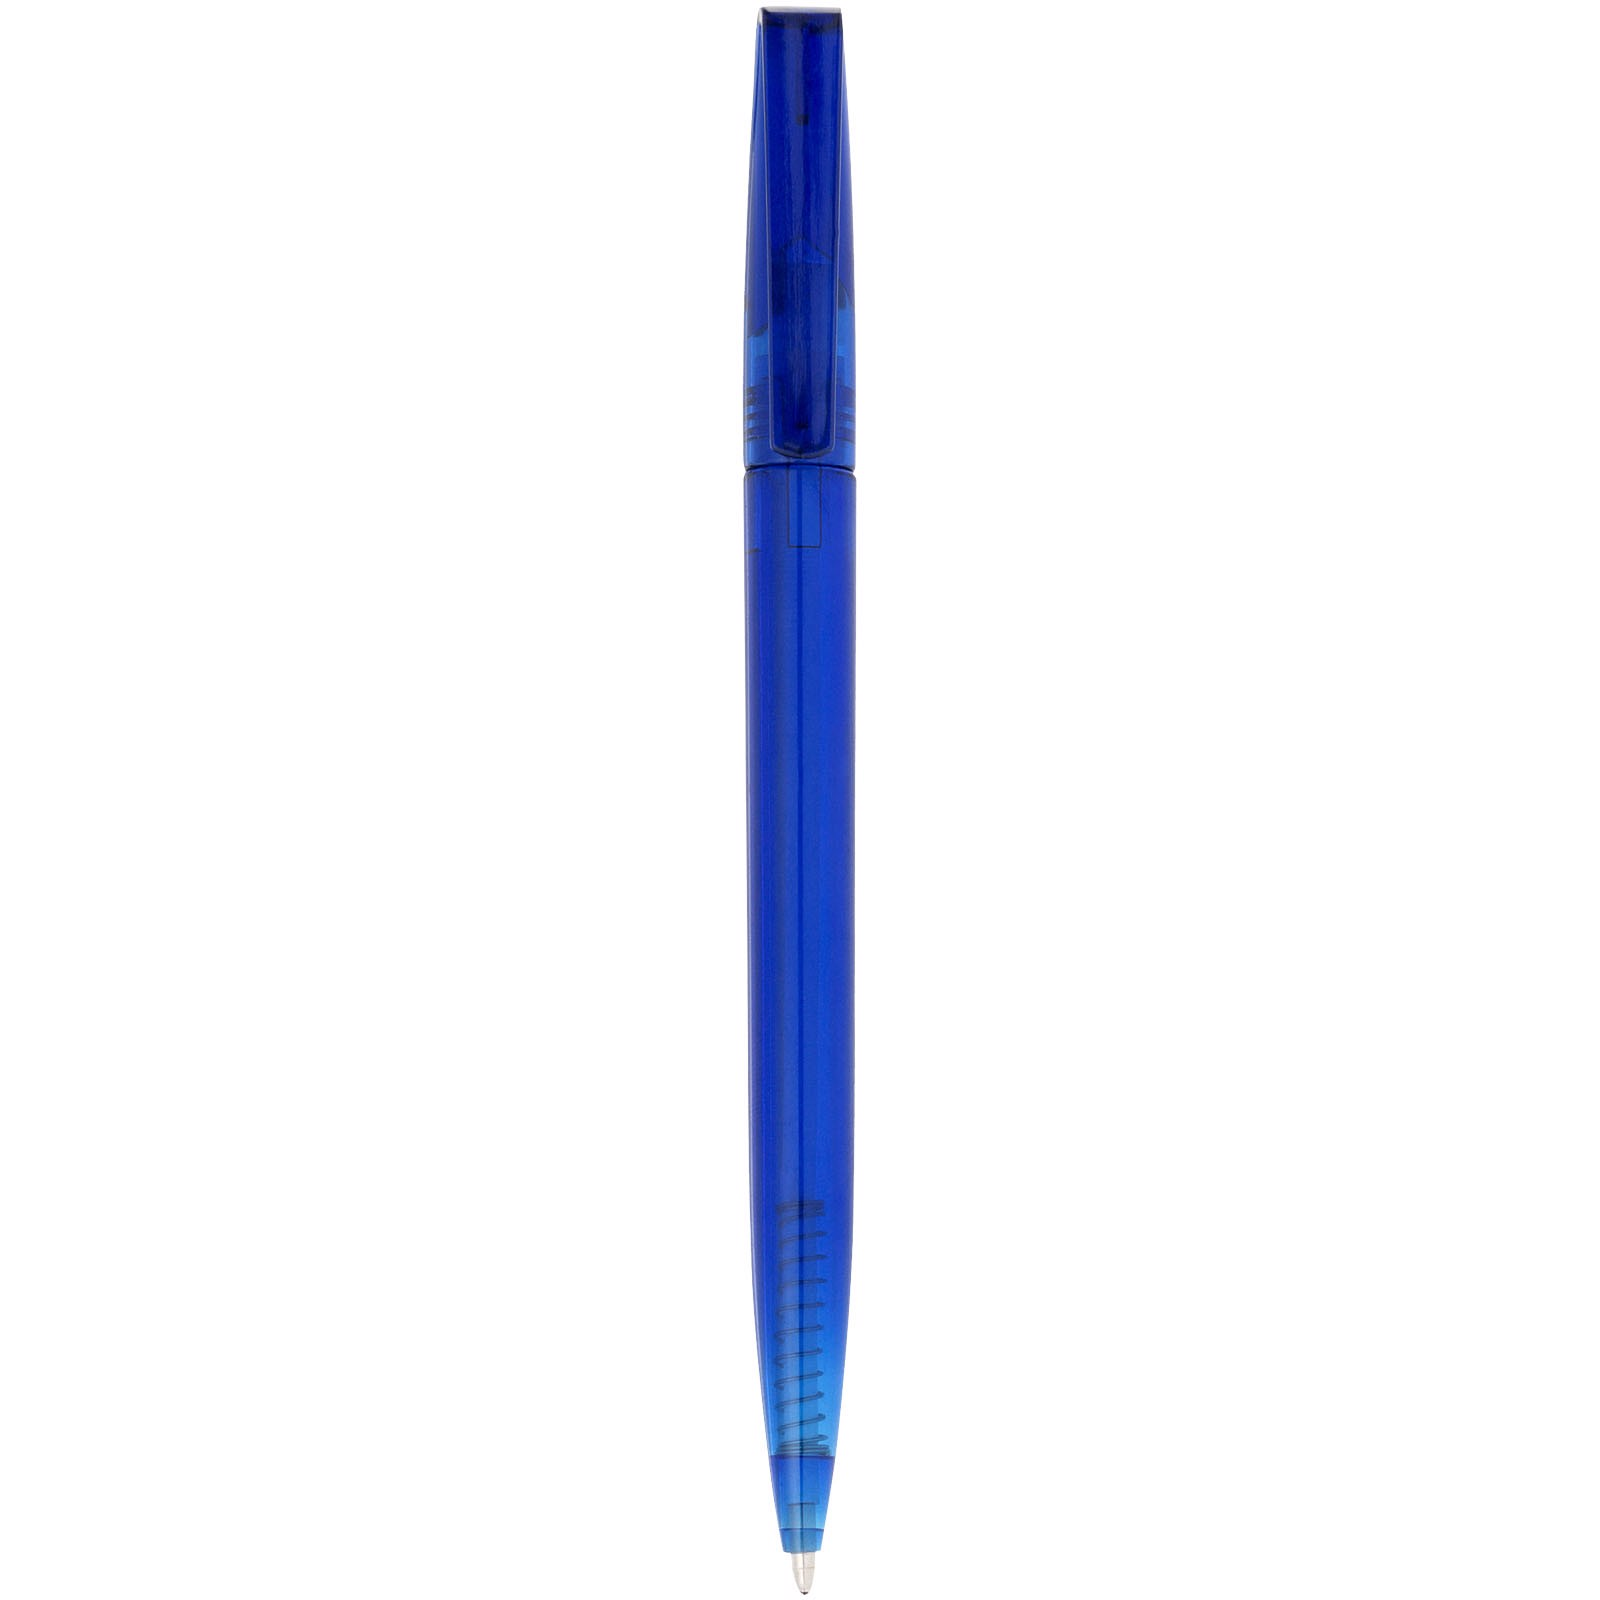 London ballpoint pen - Navy